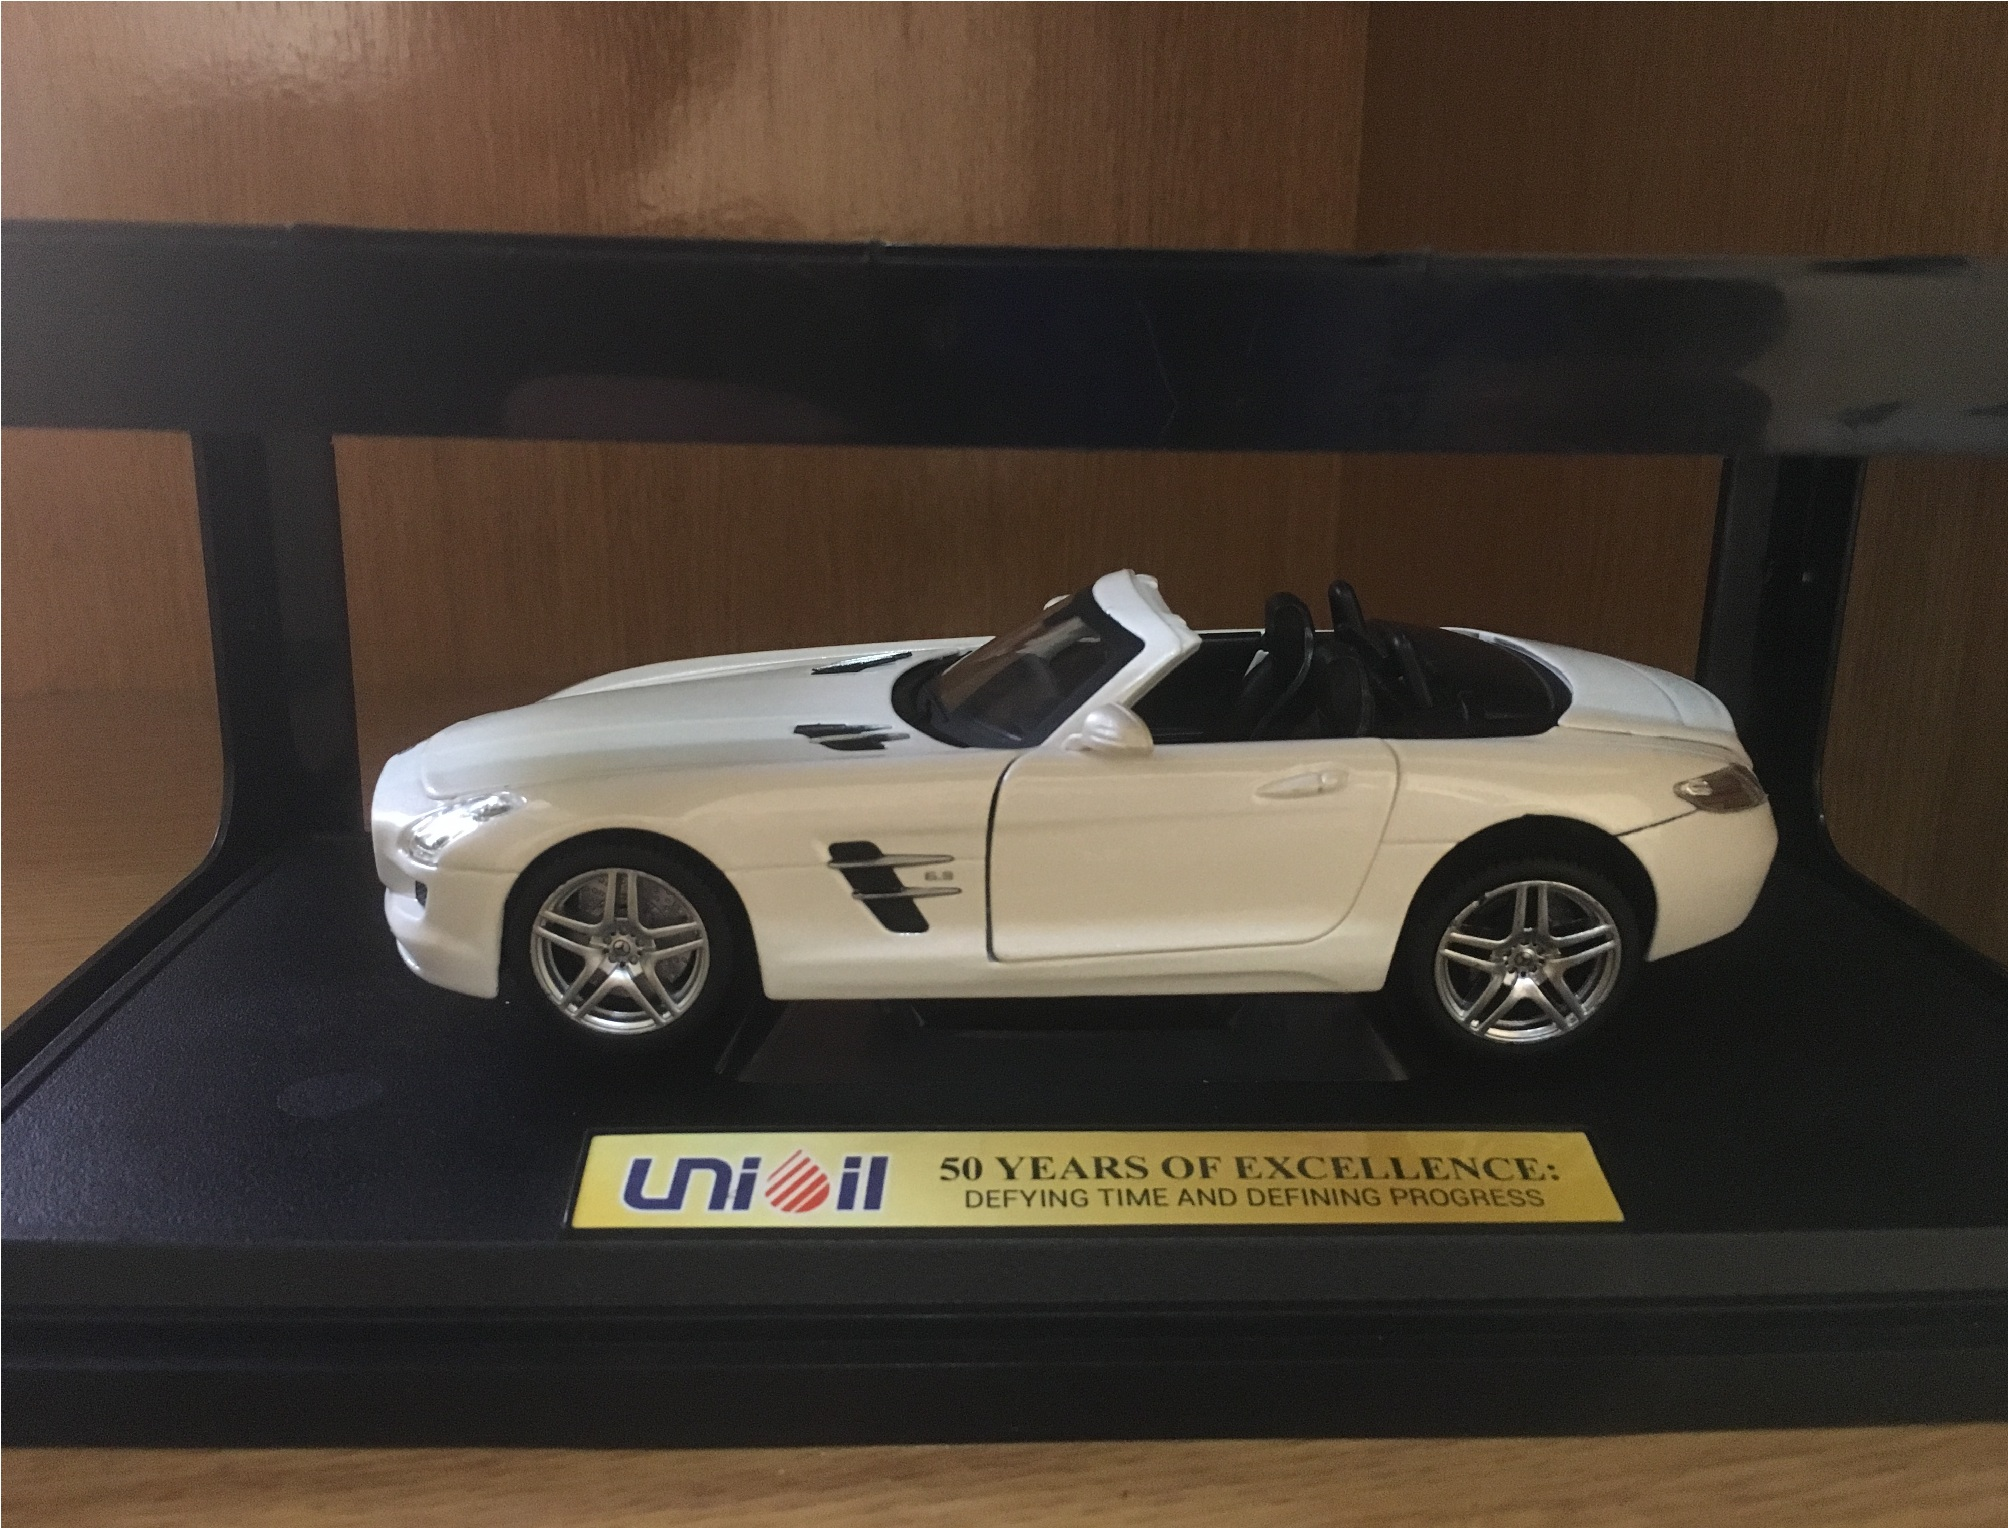 Cool mercedes benz sls amg roadster toy from unioil for Mercedes benz toy car models